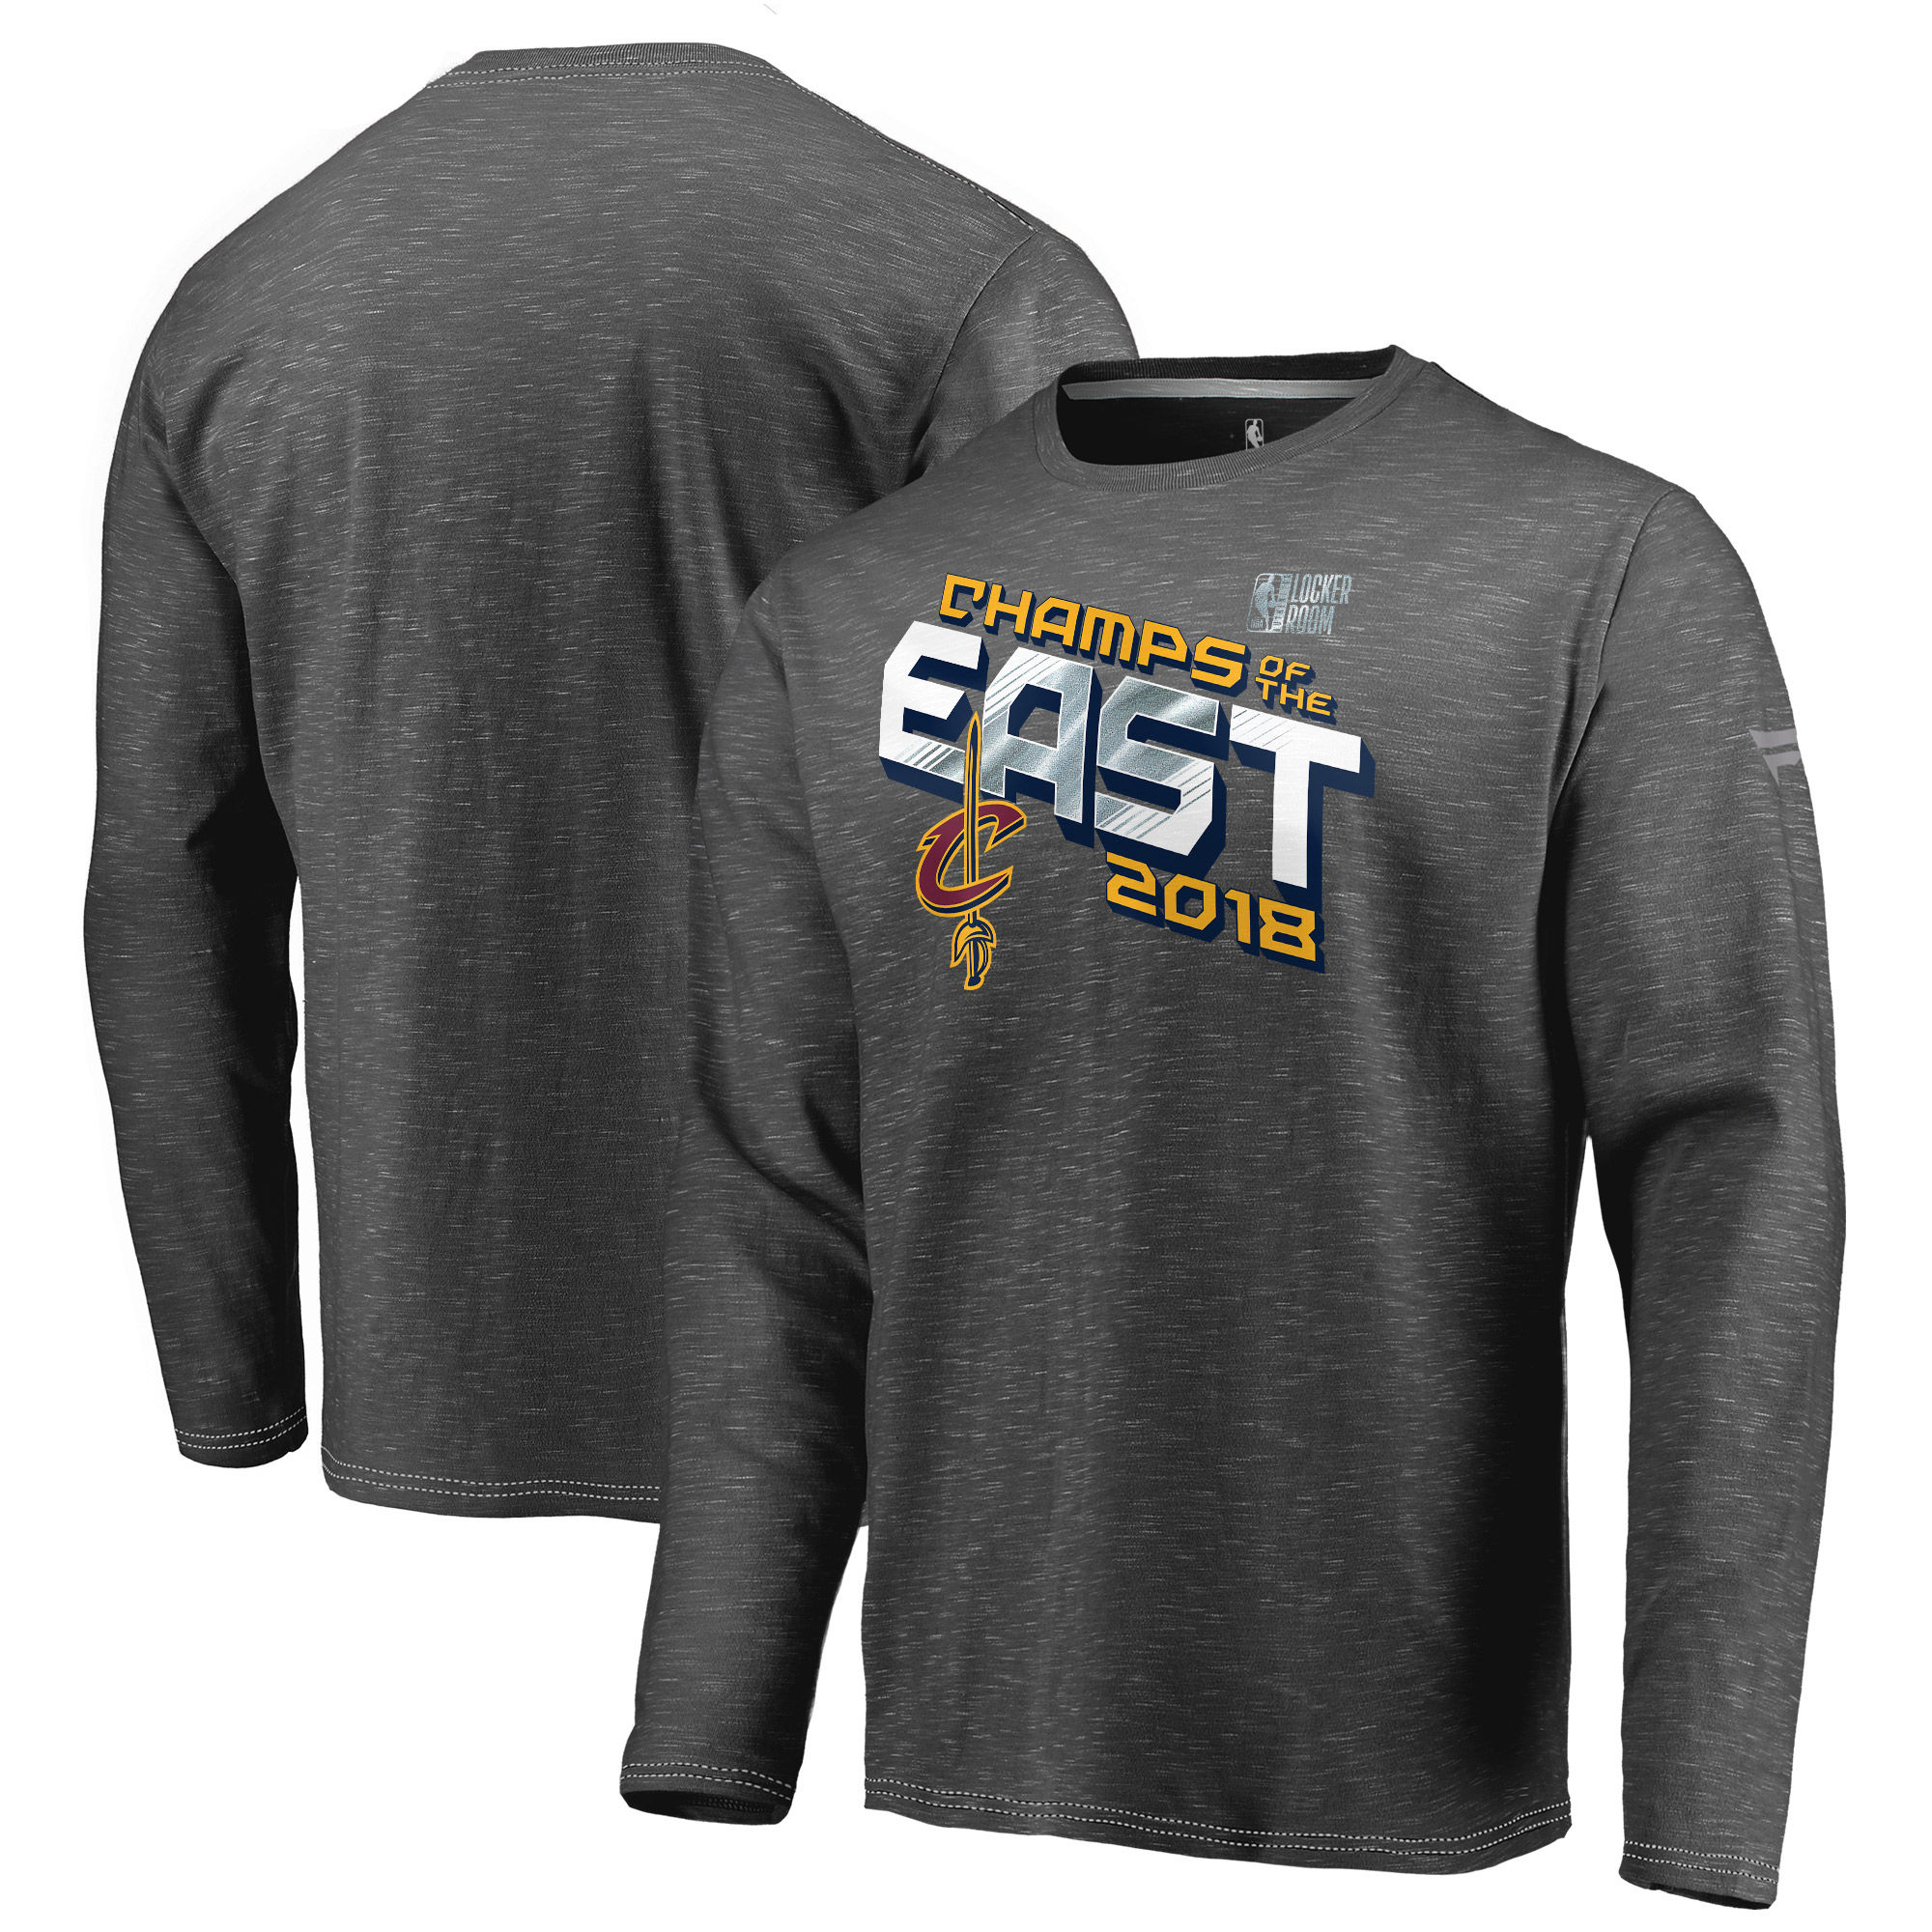 Cleveland Cavaliers Fanatics Branded 2018 Eastern Conference Champions Locker Room Long Sleeve T-Shirt Heather Charcoal